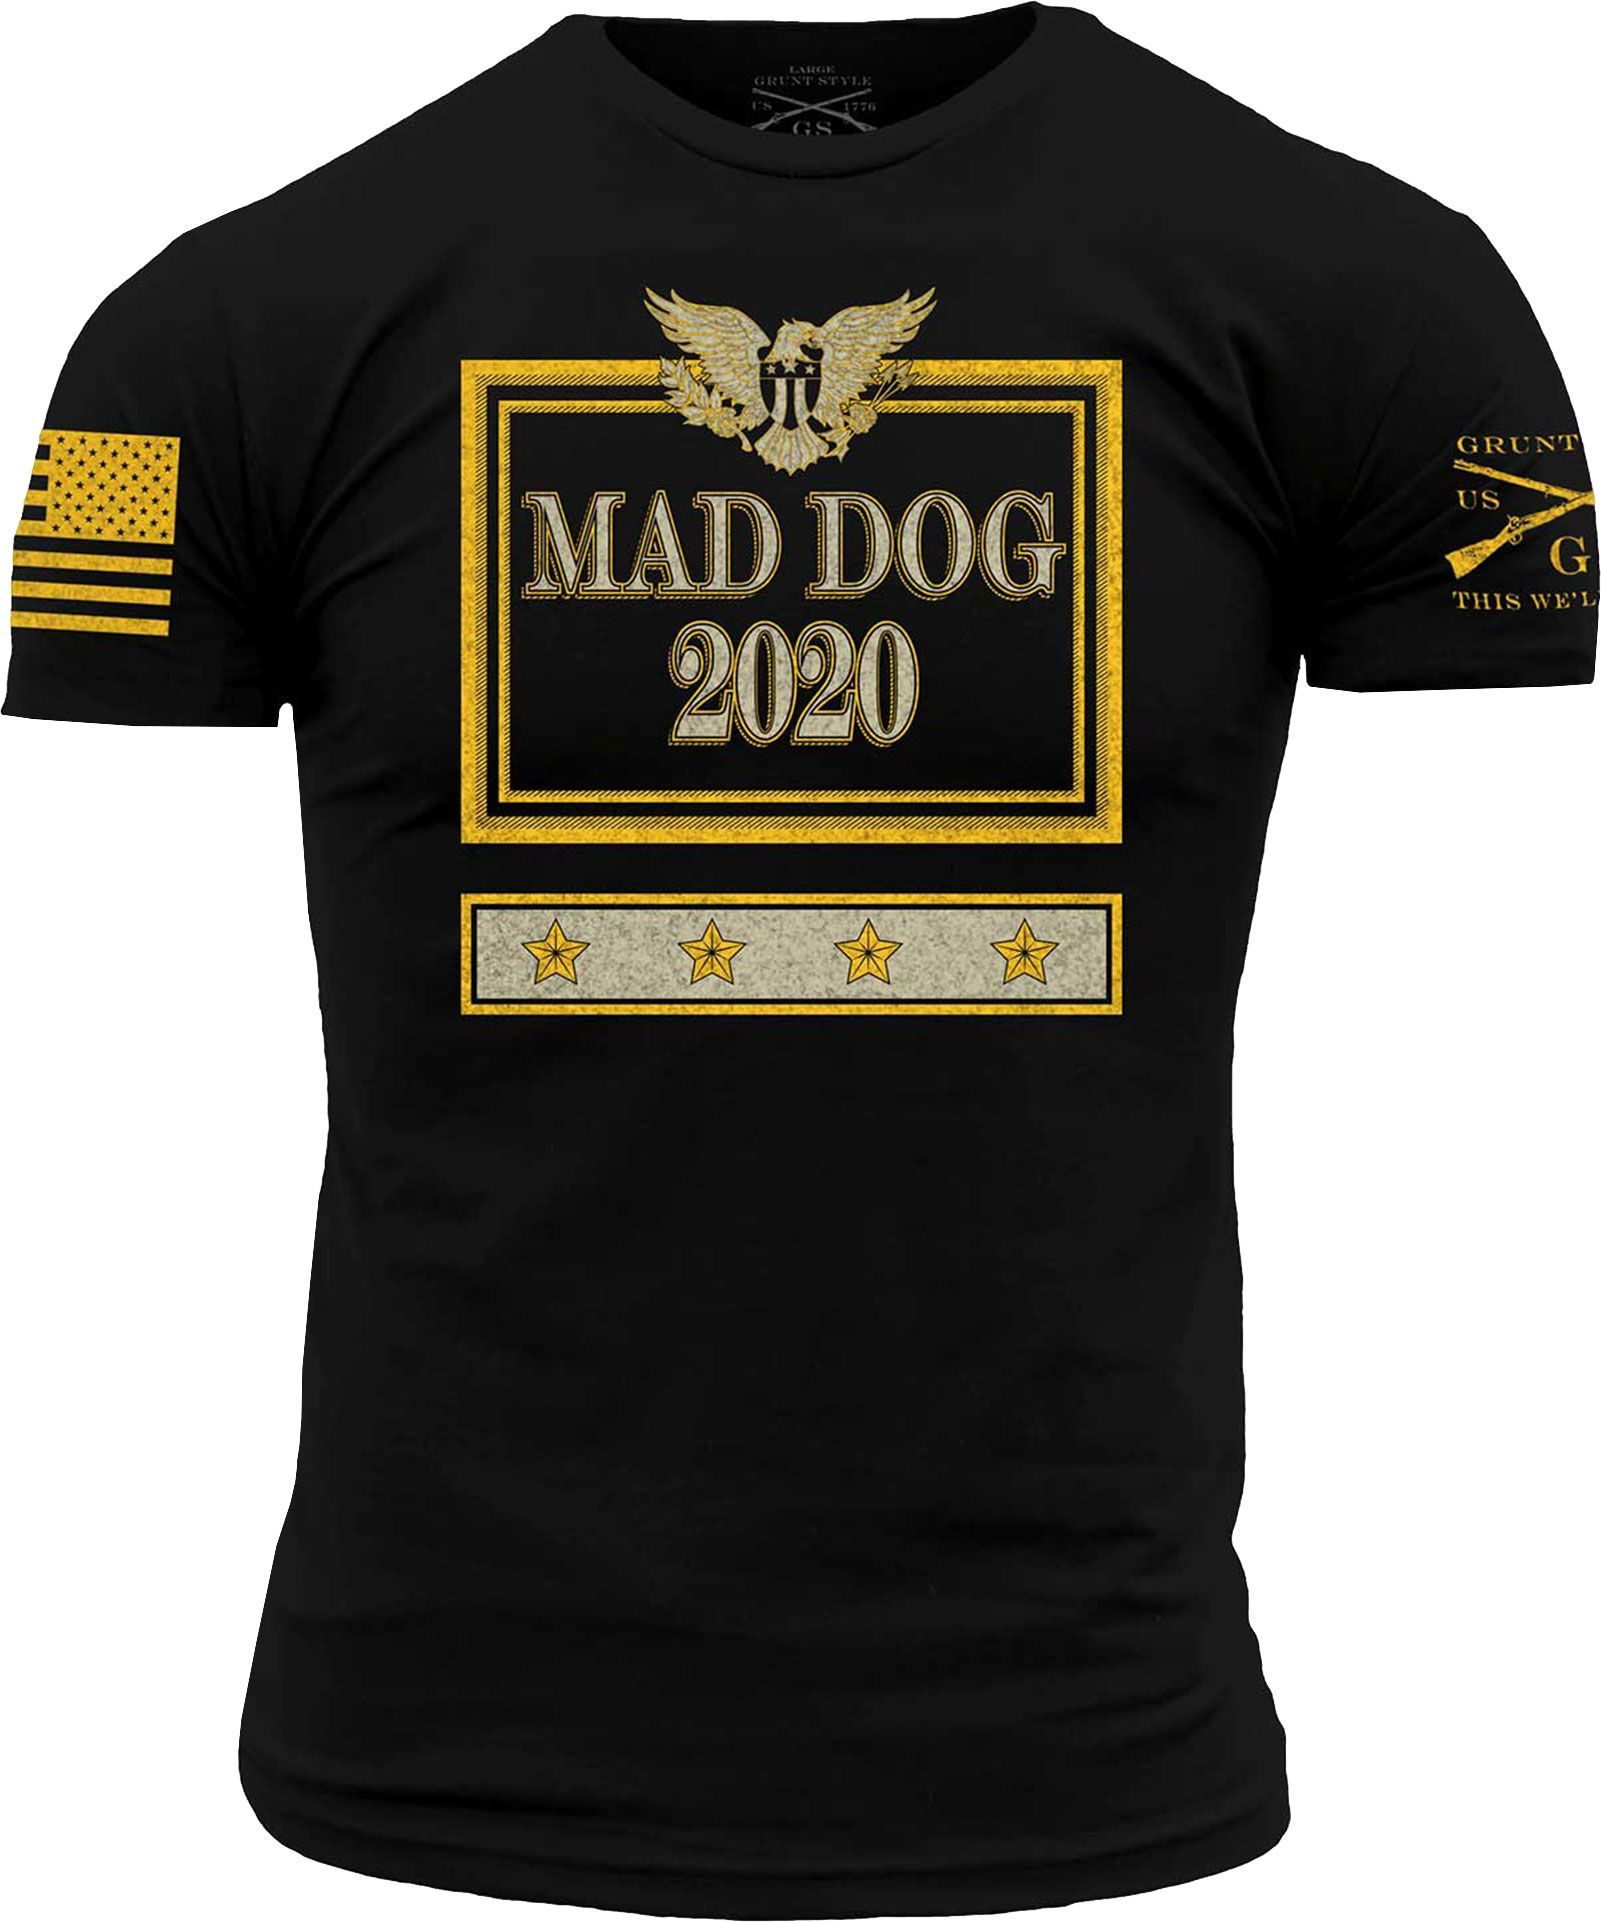 4a882477 Grunt Style Men's Mad Dog 2020 Short Sleeve T-Shirt | Products ...